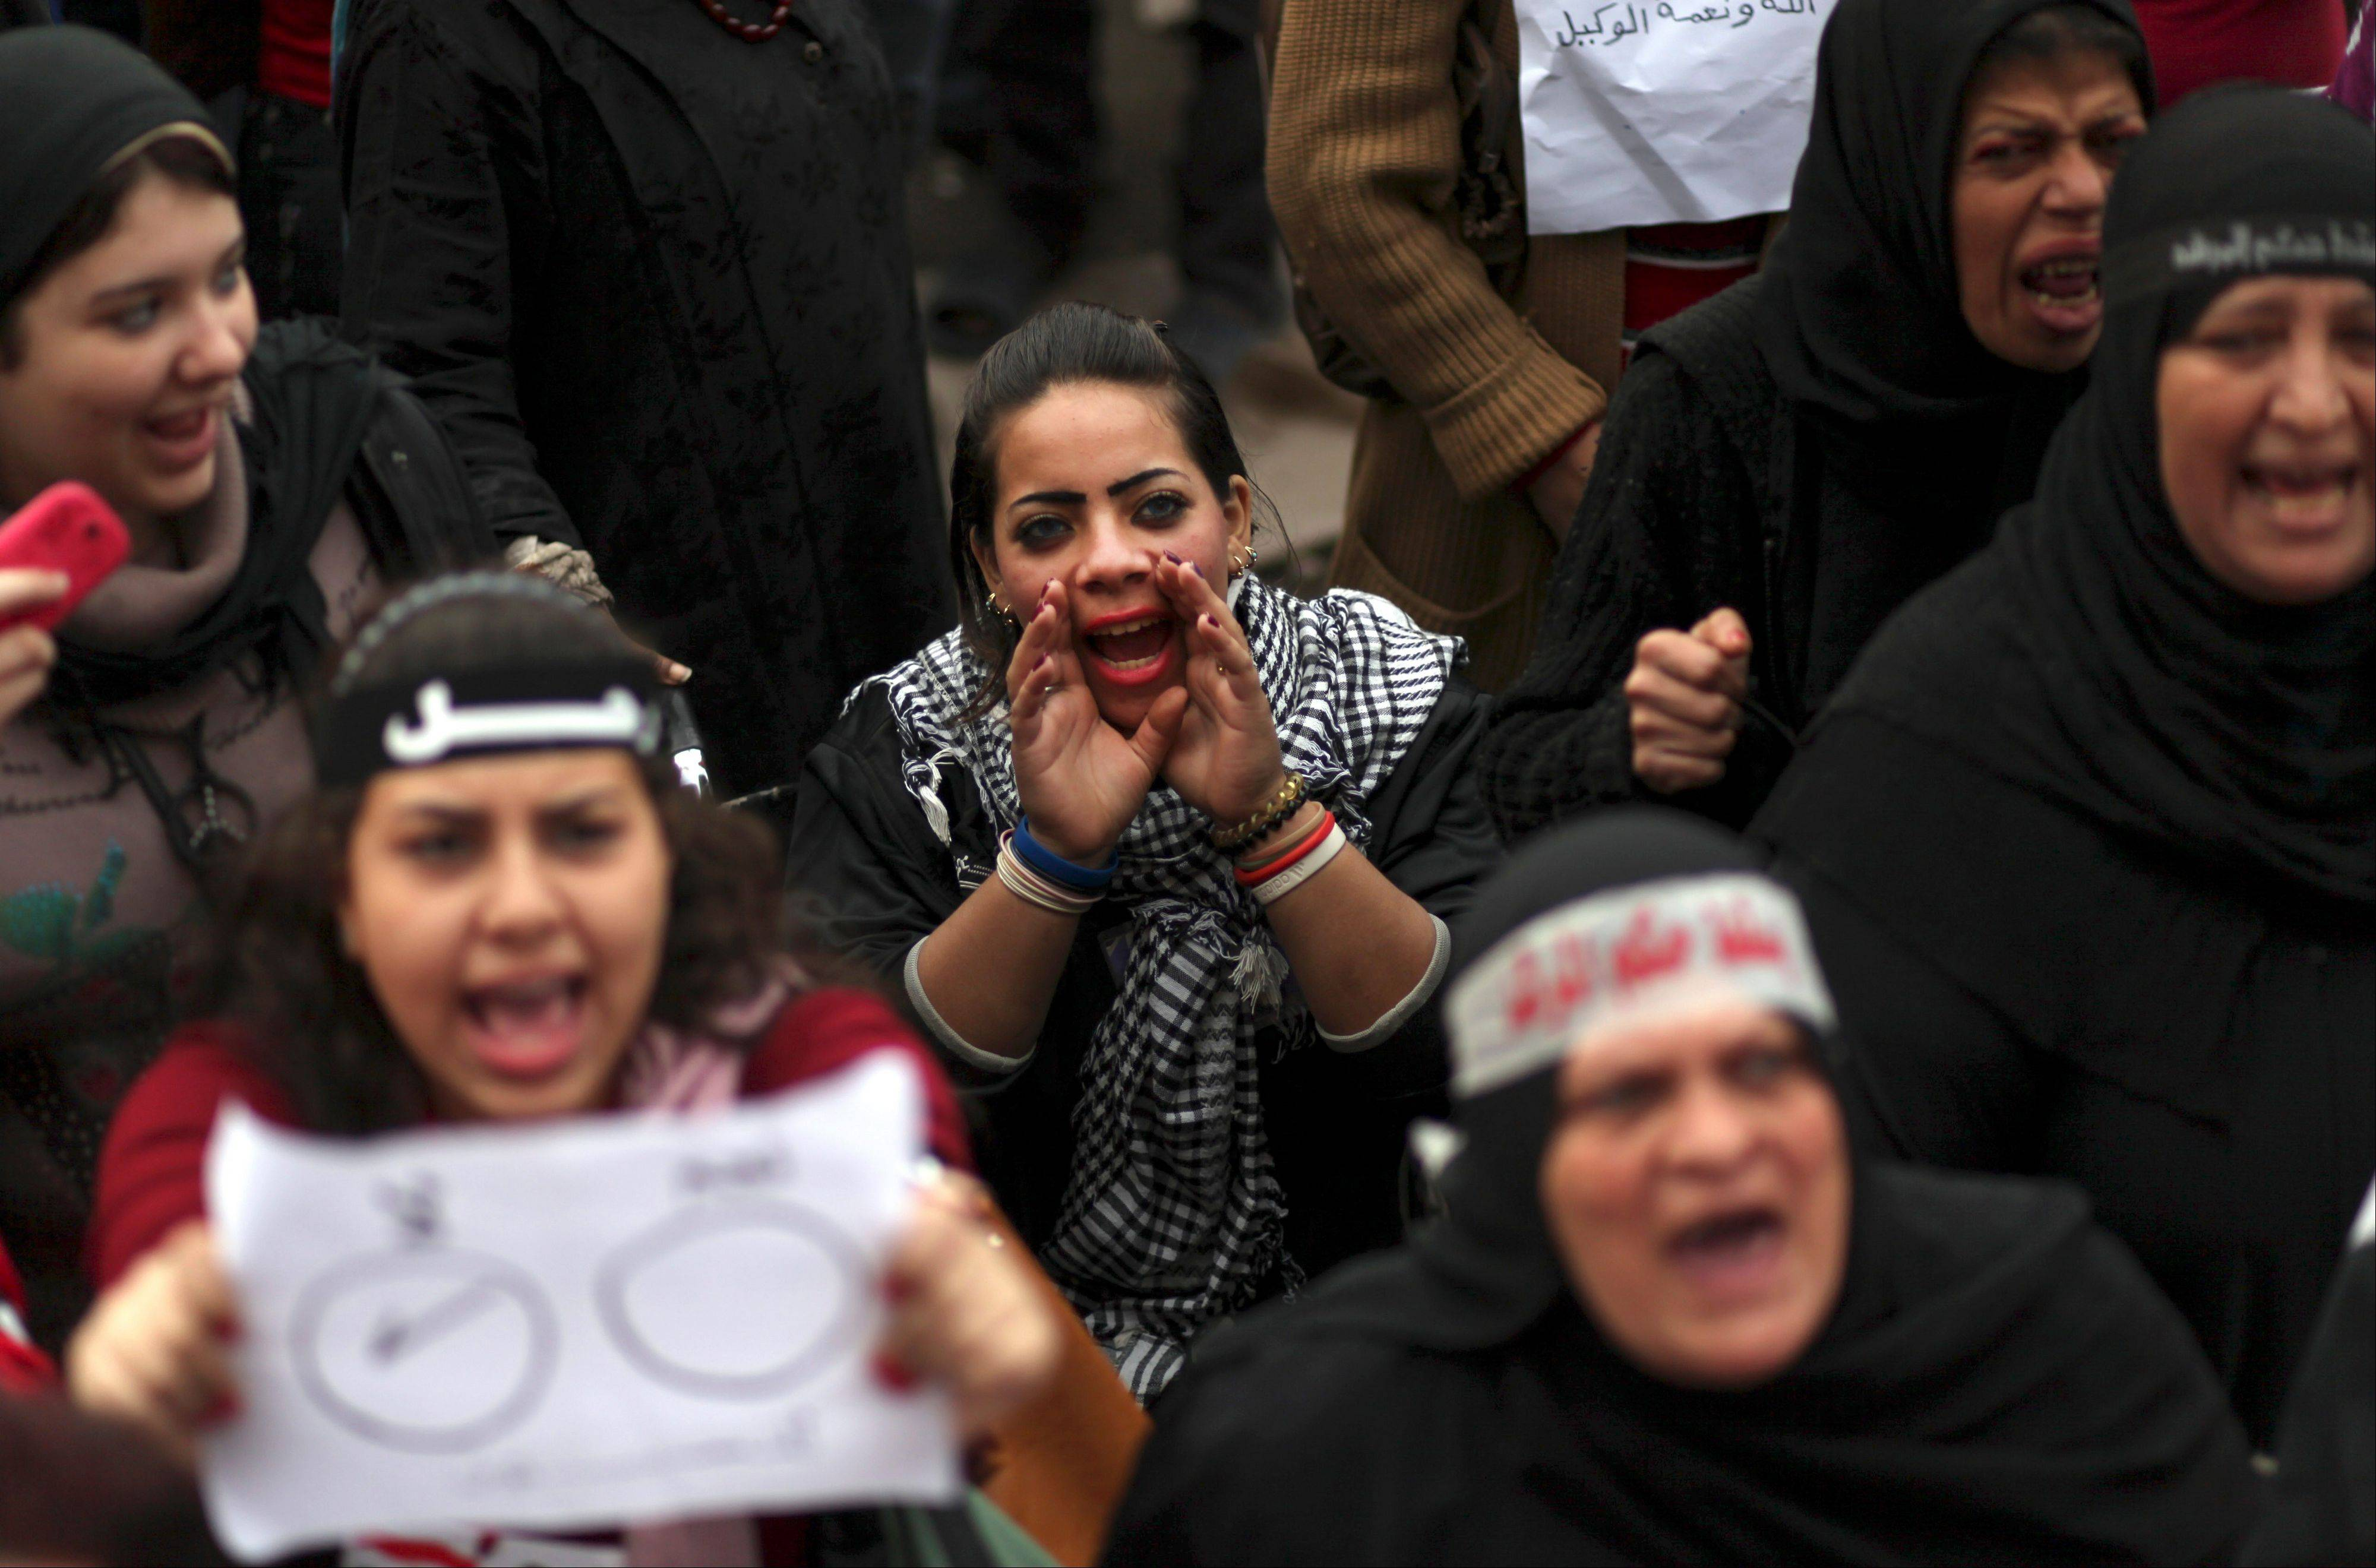 Egyptian protesters chant slogans as they attend a demonstration in Tahrir Square in Cairo, Egypt, Friday, Dec. 14, 2012. Opposing sides in Egypt�s political crisis were staging rival rallies on Friday, the final day before voting starts on a contentious draft constitution that has plunged the country into turmoil and deeply divided the nation.